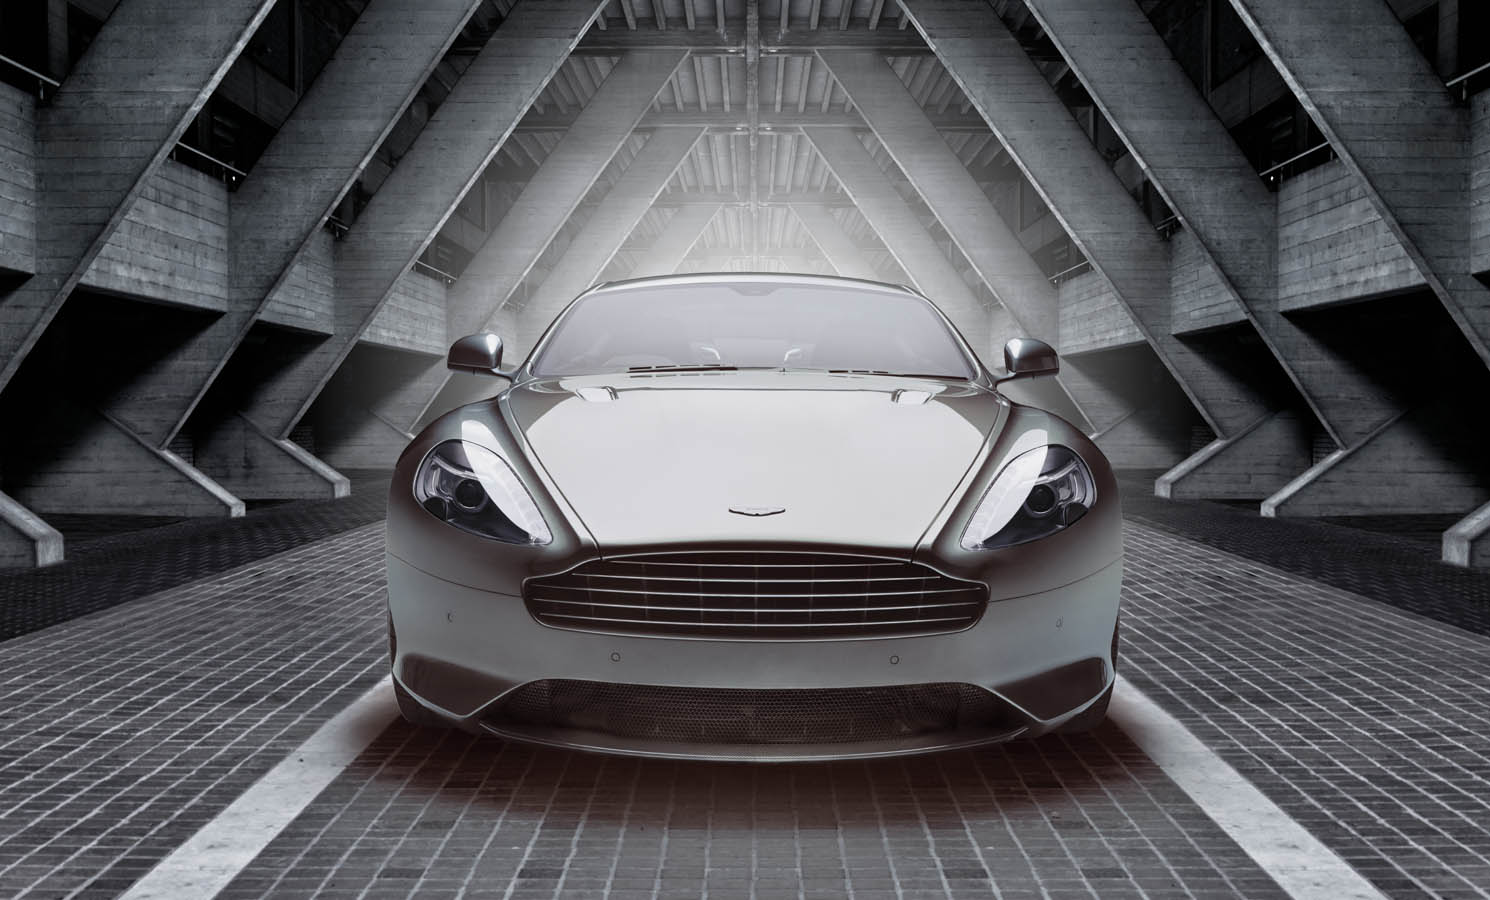 Limited Wanted Aston Martin Db9 Gt Bond Edition Drivers Club Germany